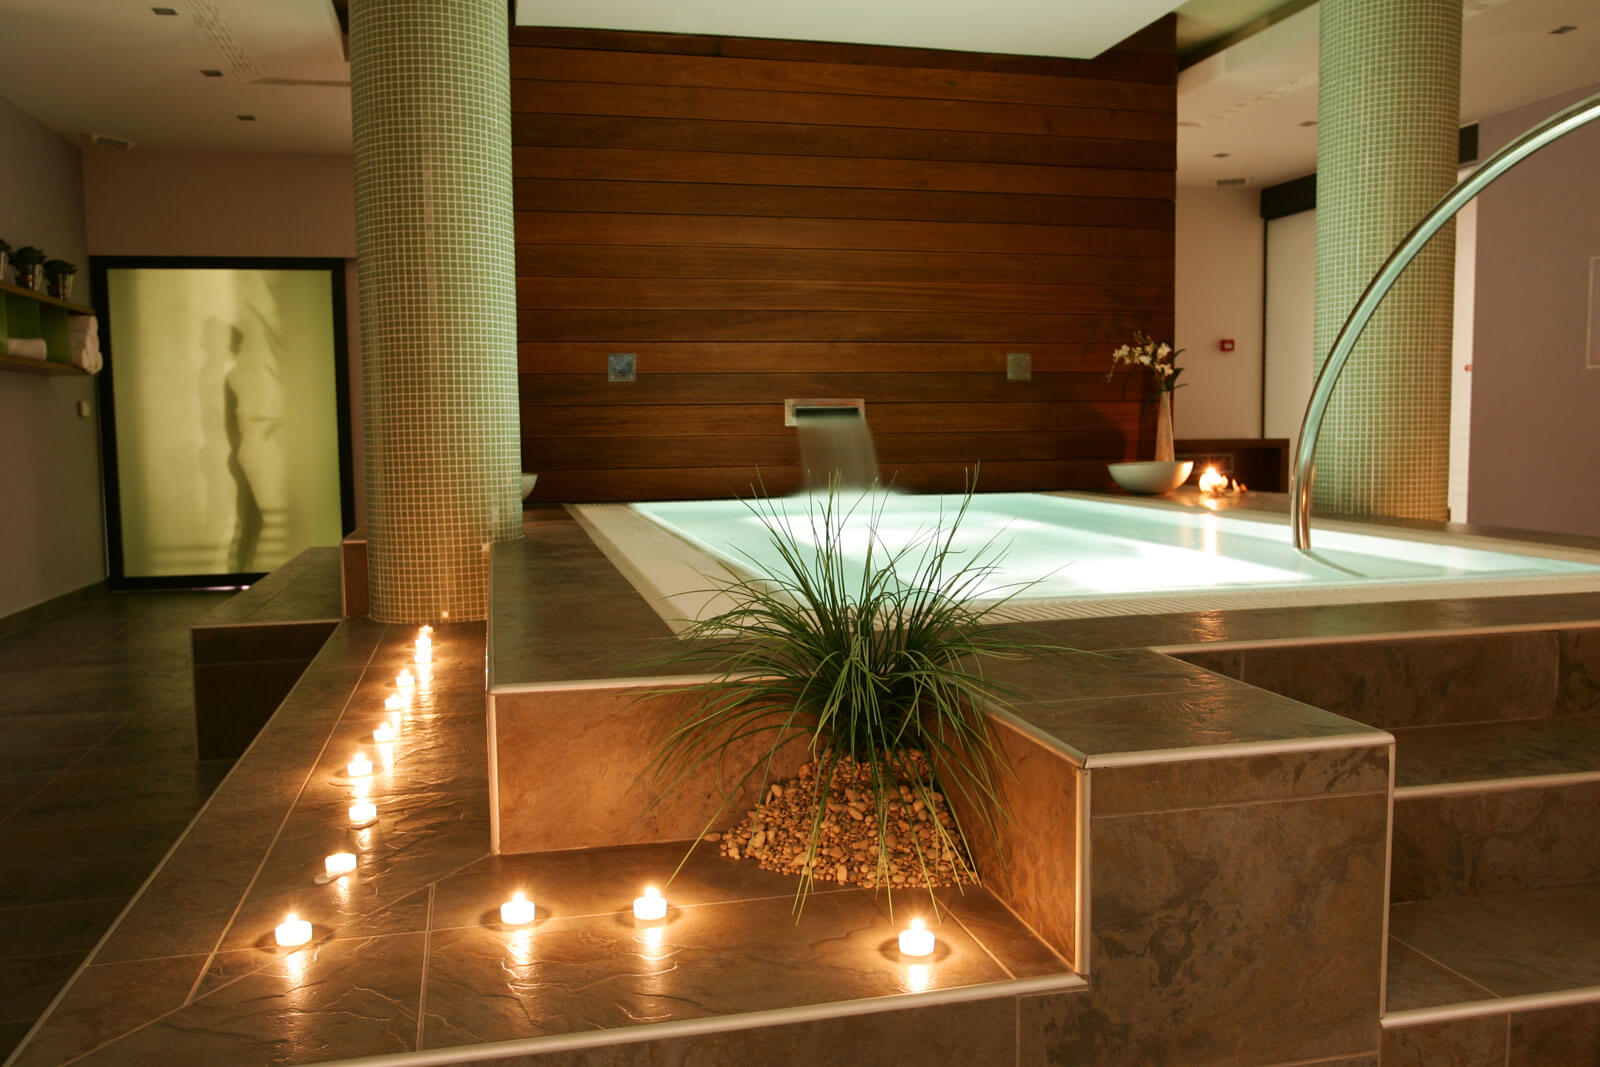 Luxe spa en wellness Grillo Natuursteen